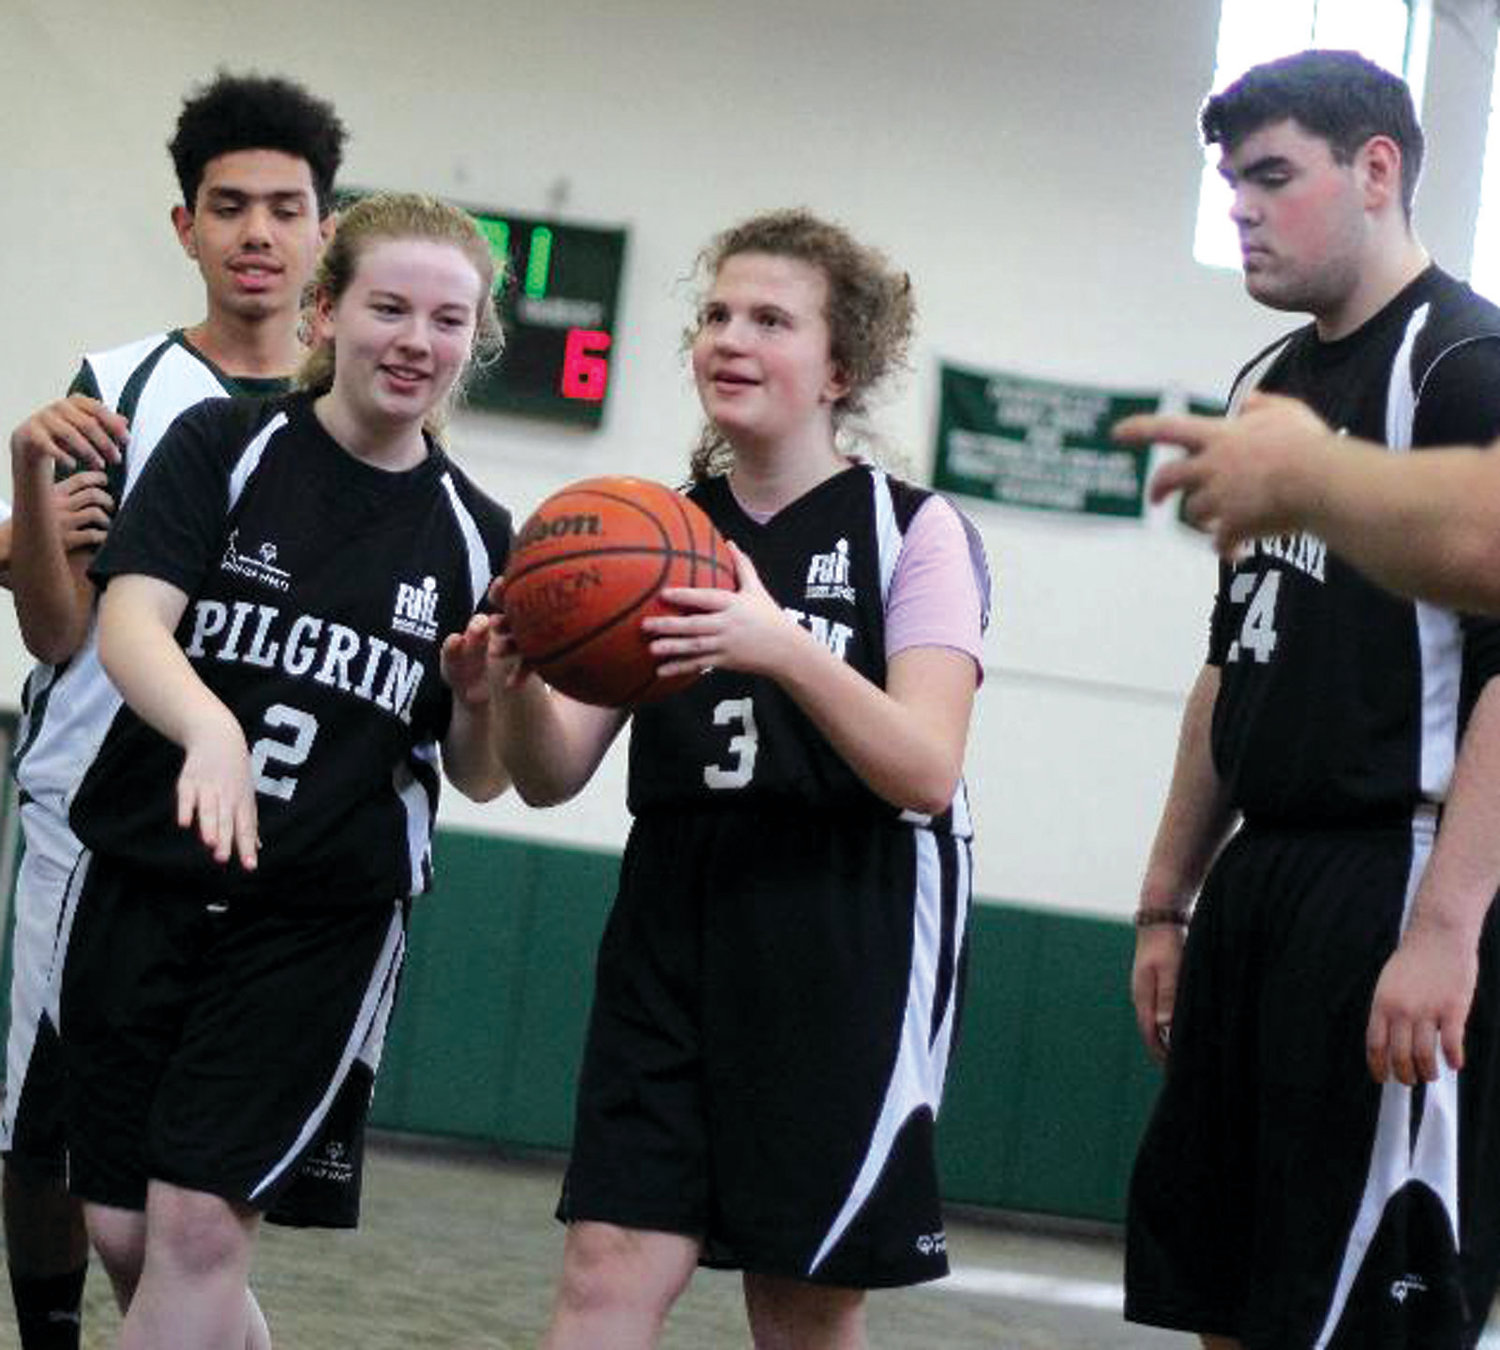 DRIVING: Pilgrim's Olivia Doyle, along with teammates, drives to the basket.